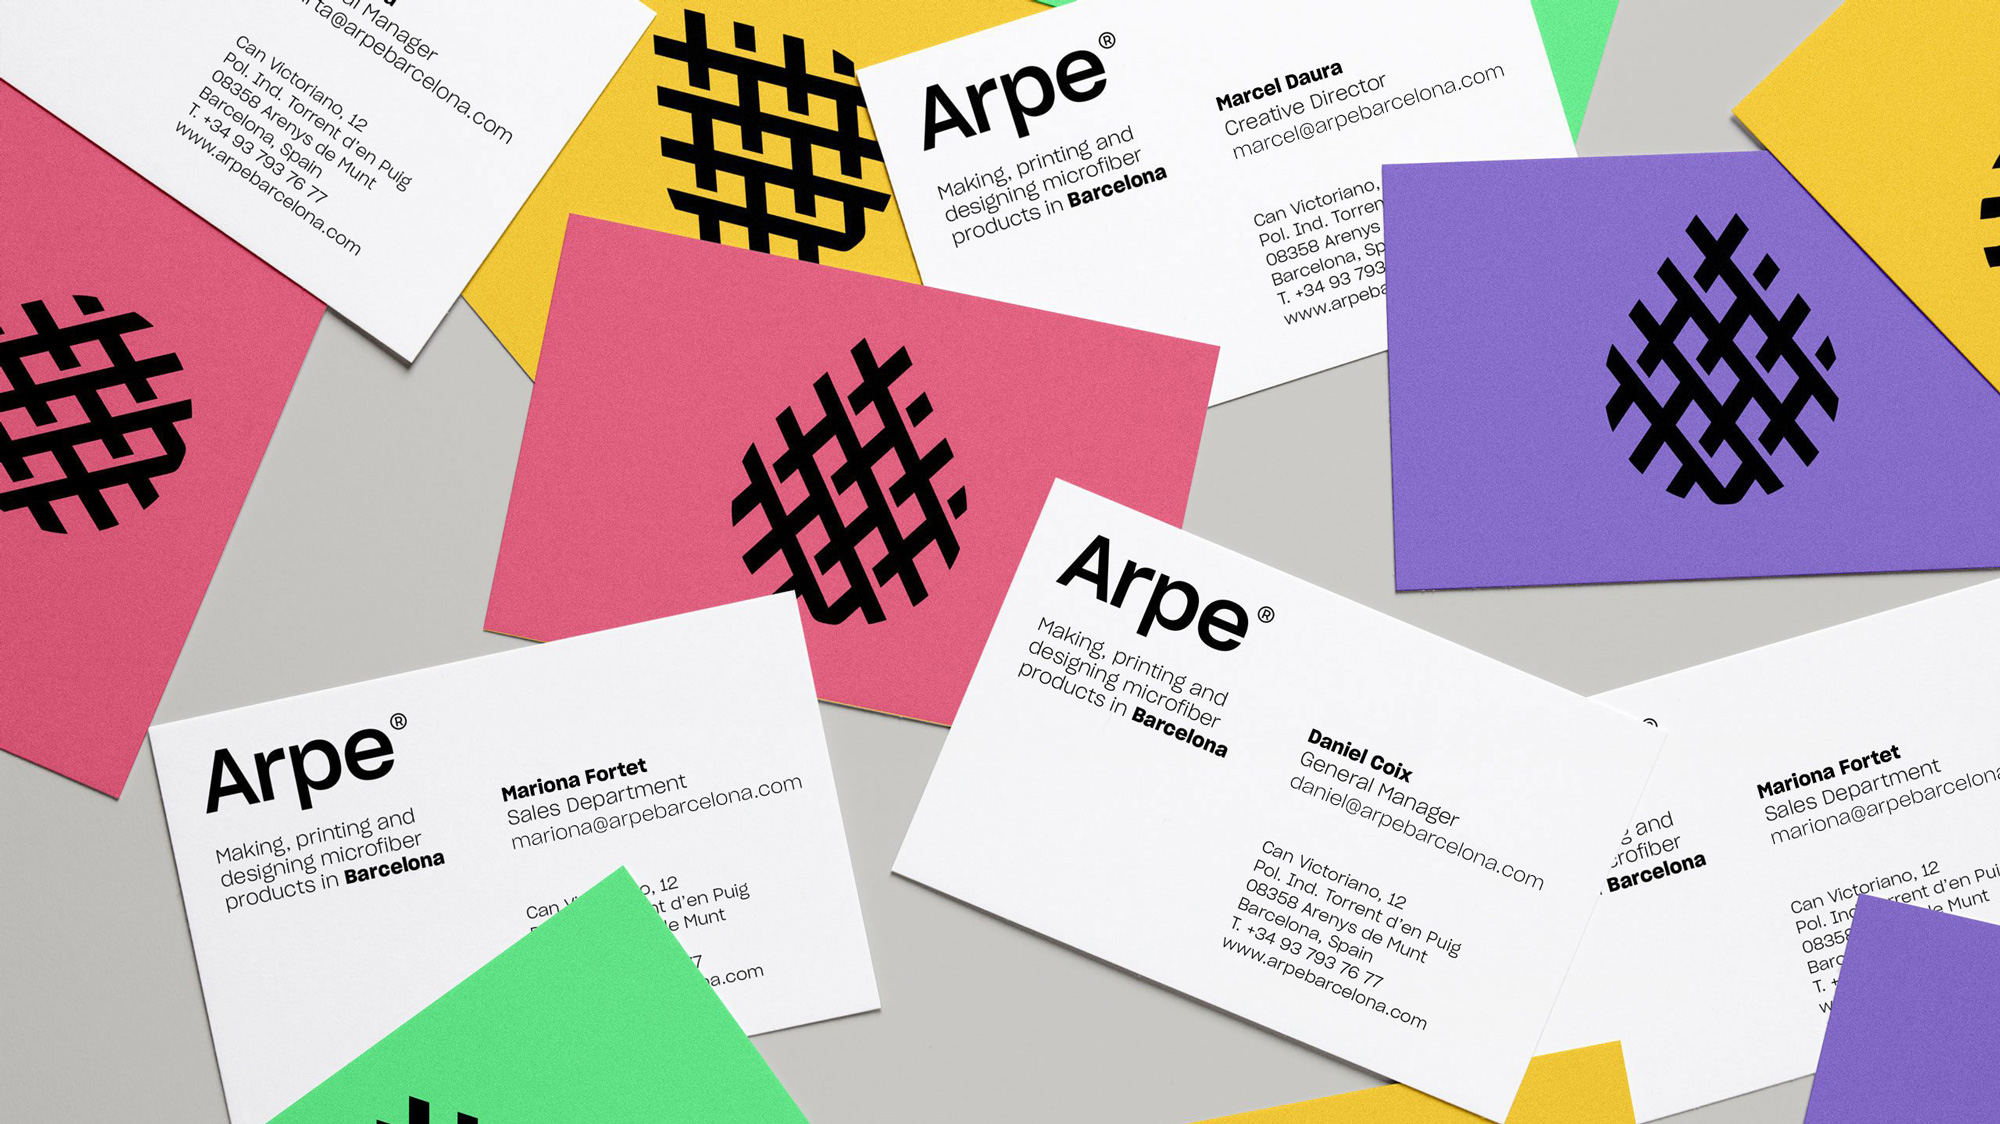 New Logo and Identity for Arpe by Toormix